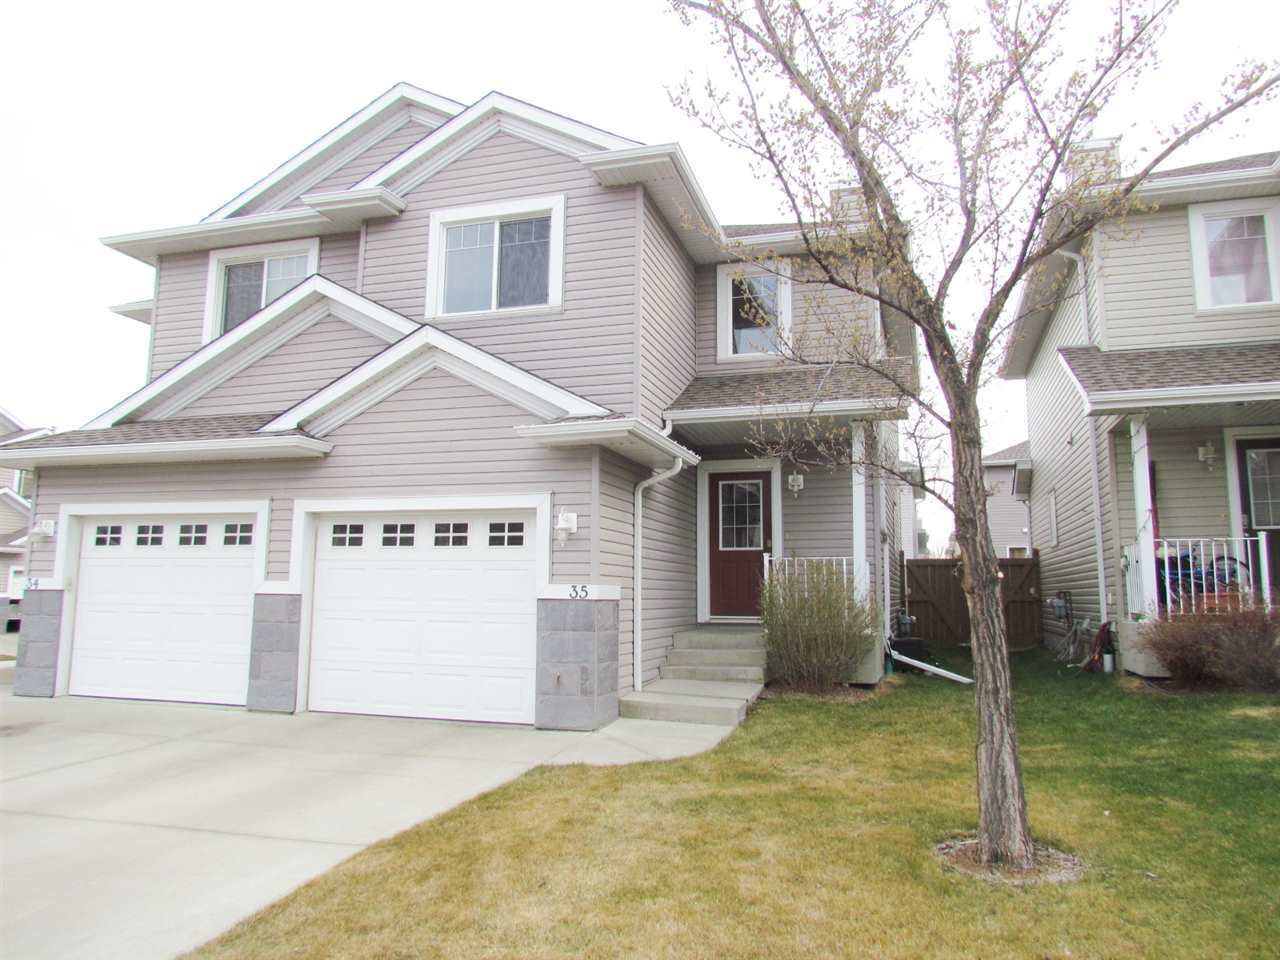 Absolutely spotless! You will love this spotless fully finished 2 bed 2.5 bath open great room concept in in Hodgson close to everything! The main floor features open concept perfect for entertaining with large kitchen & plenty of cupboard space including large island with granite! Wall to wall engineered hardwood throughout. The upper level has 2 huge bedrooms both with walk in closets and 2 4 piece bathrooms upstairs. The fully finished basement has a flex room that can be a family room, office, or gym. A patio door leads to your very own private 6 ft high fenced backyard. All conveniently located within walking distance to the Market of Magrath, Terwillegar Rec Center, park, running trails, Anthony Henday & public transportation!